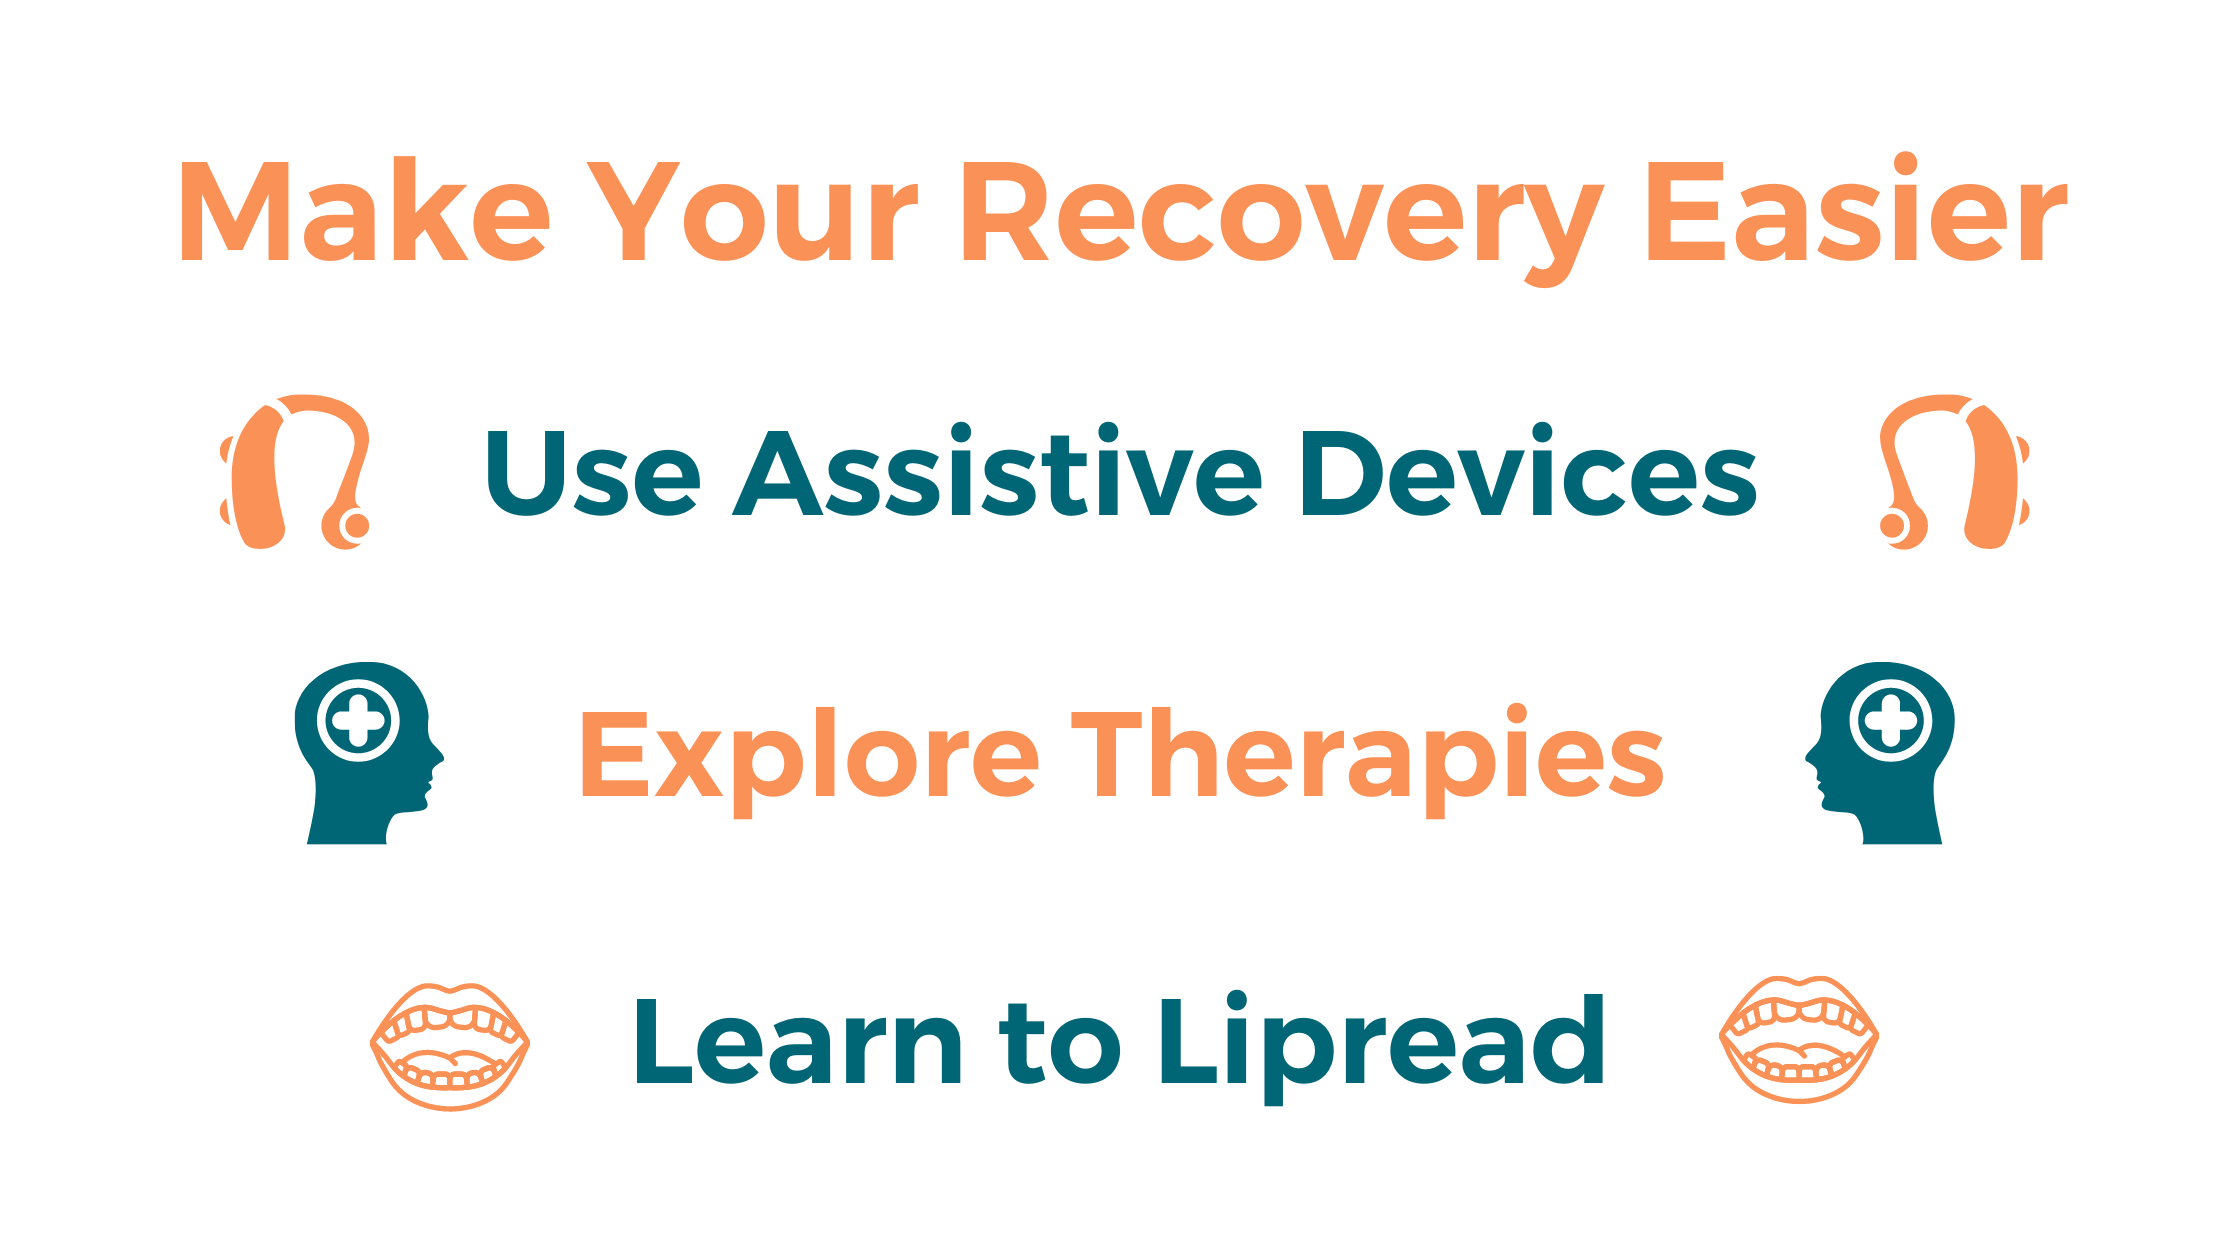 Make your recovery easier by using assistive devices, explore therapies, and learning to lipread.